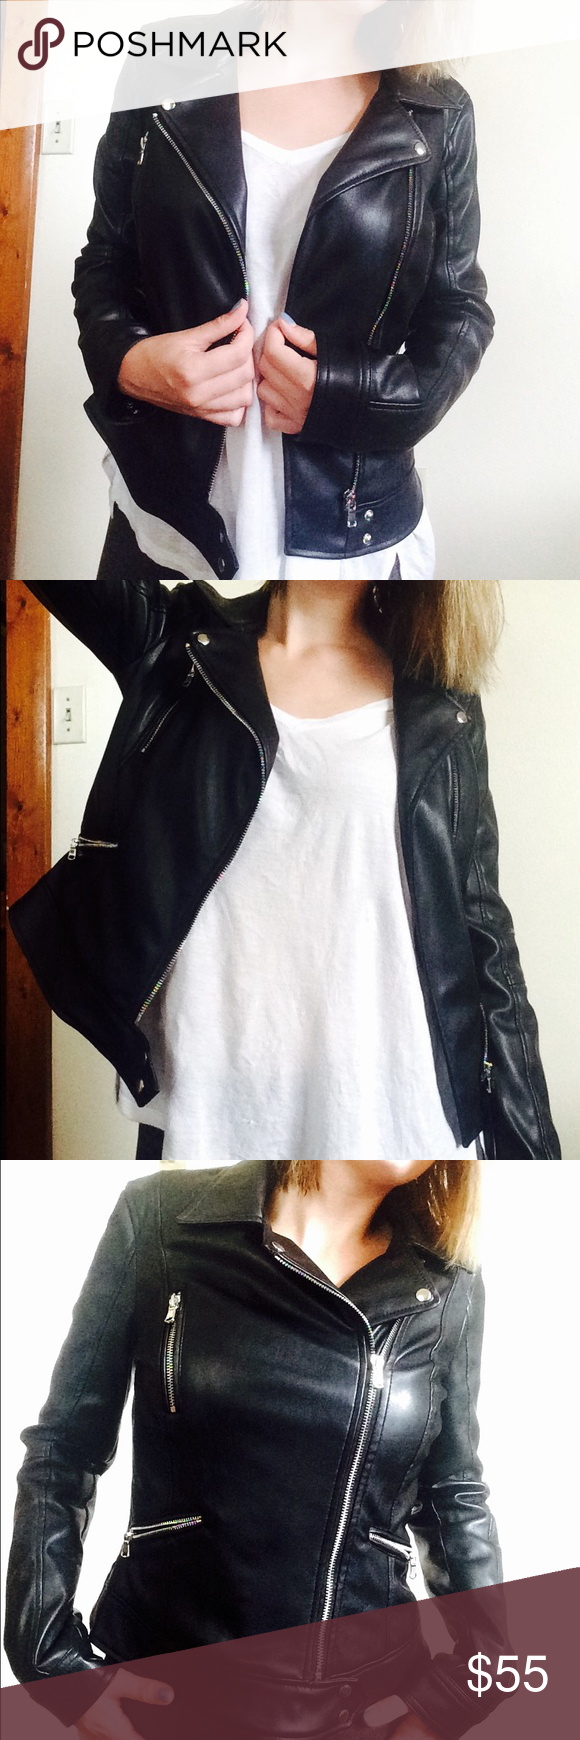 Zara Moto Jacket Faux black leather with lots of sliver zippers makes this jacket the perfect edgy outer layer! It can be zipped but I preferred to wear open, since it is cropped length. Size medium but leans towards the small side. Worn once or twice--pristine condition. Zara Jackets & Coats Utility Jackets